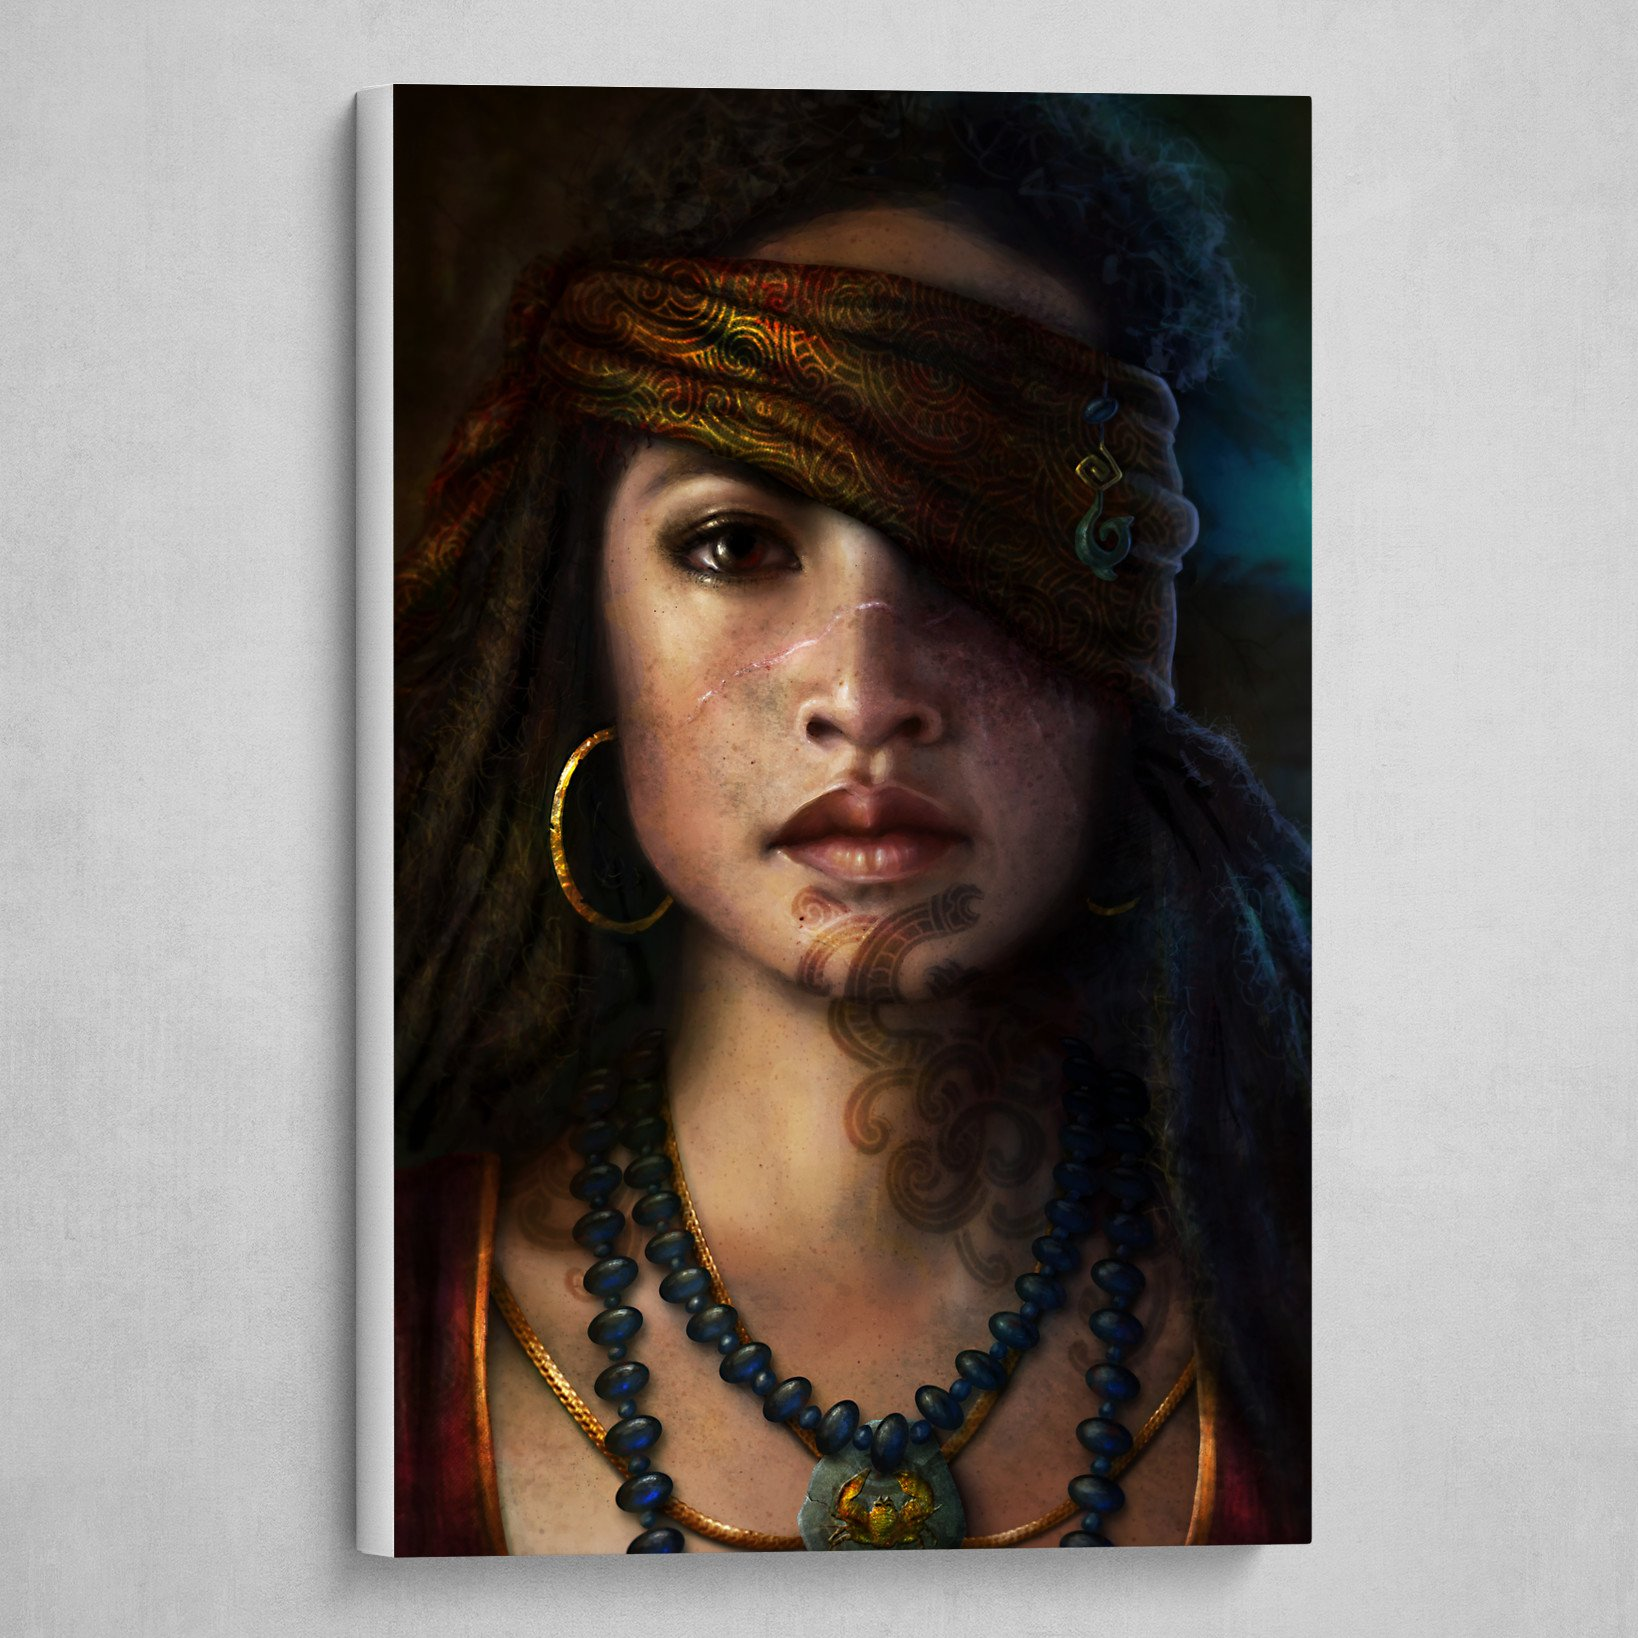 Maori Pirate Princess Portrait